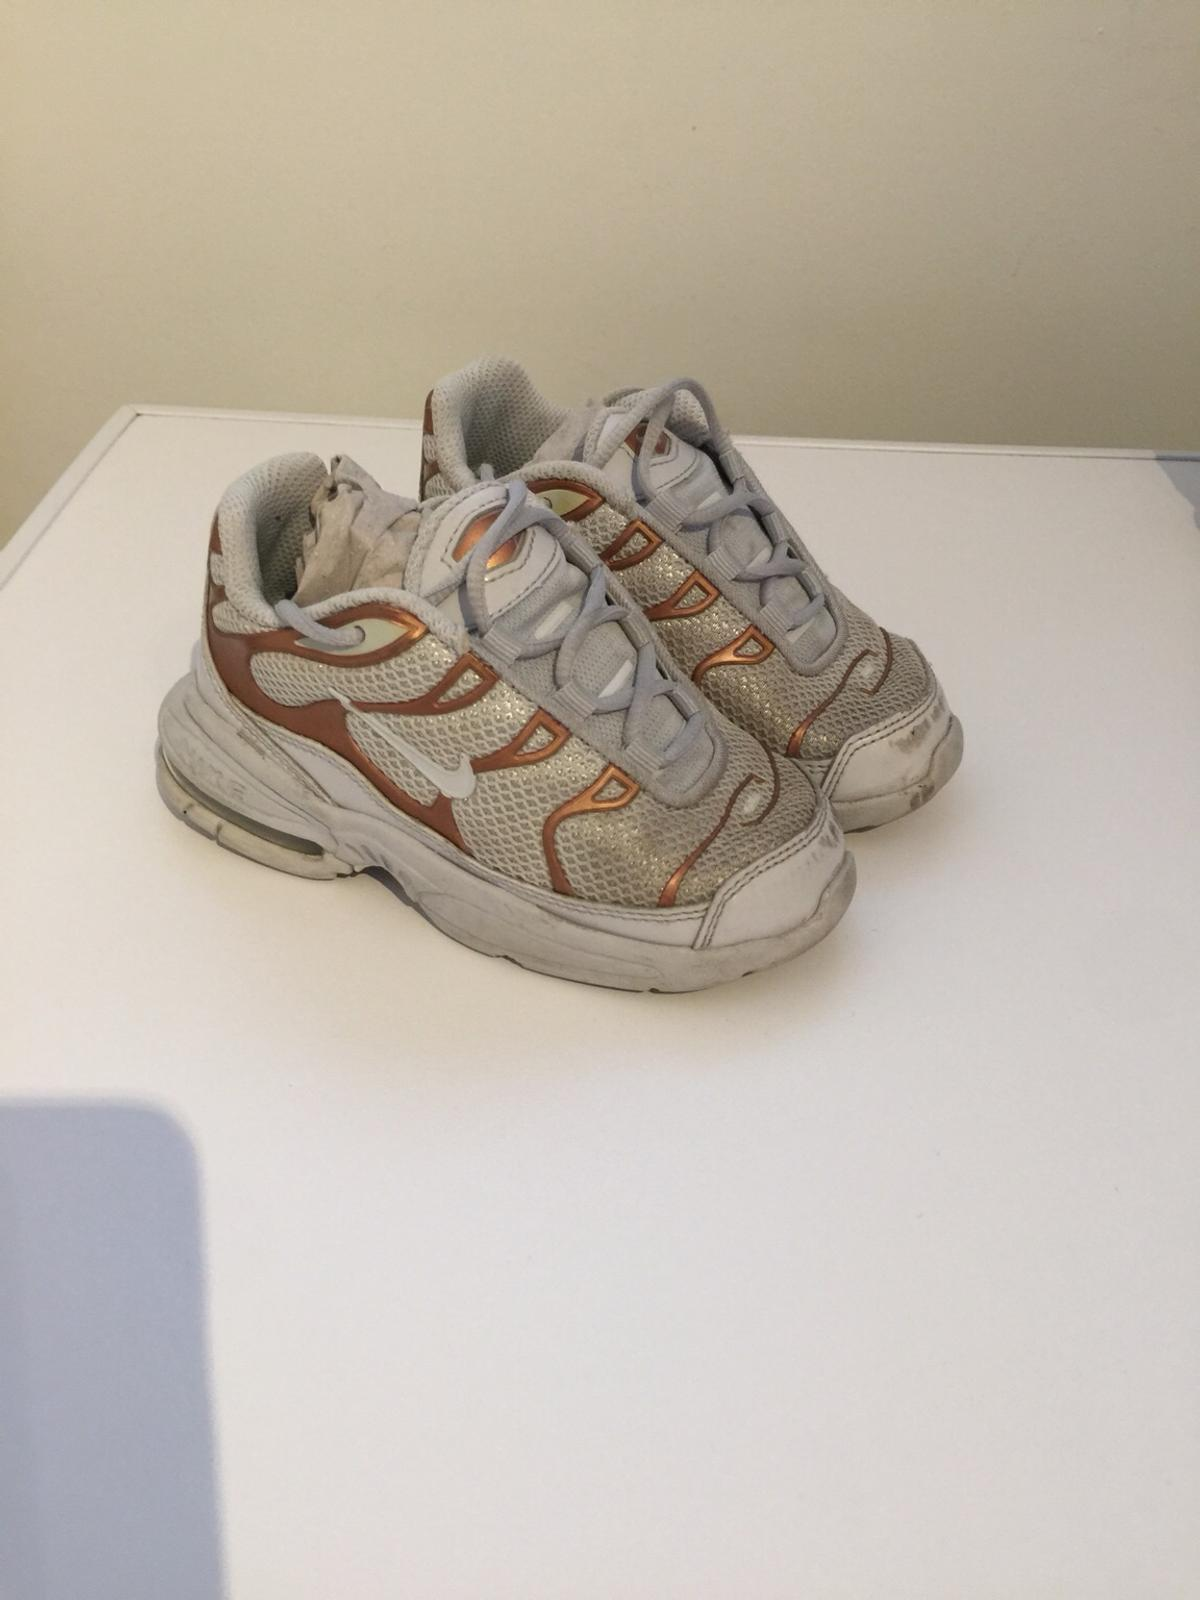 the latest 006a2 8d328 Infant Nike Tn's trainers